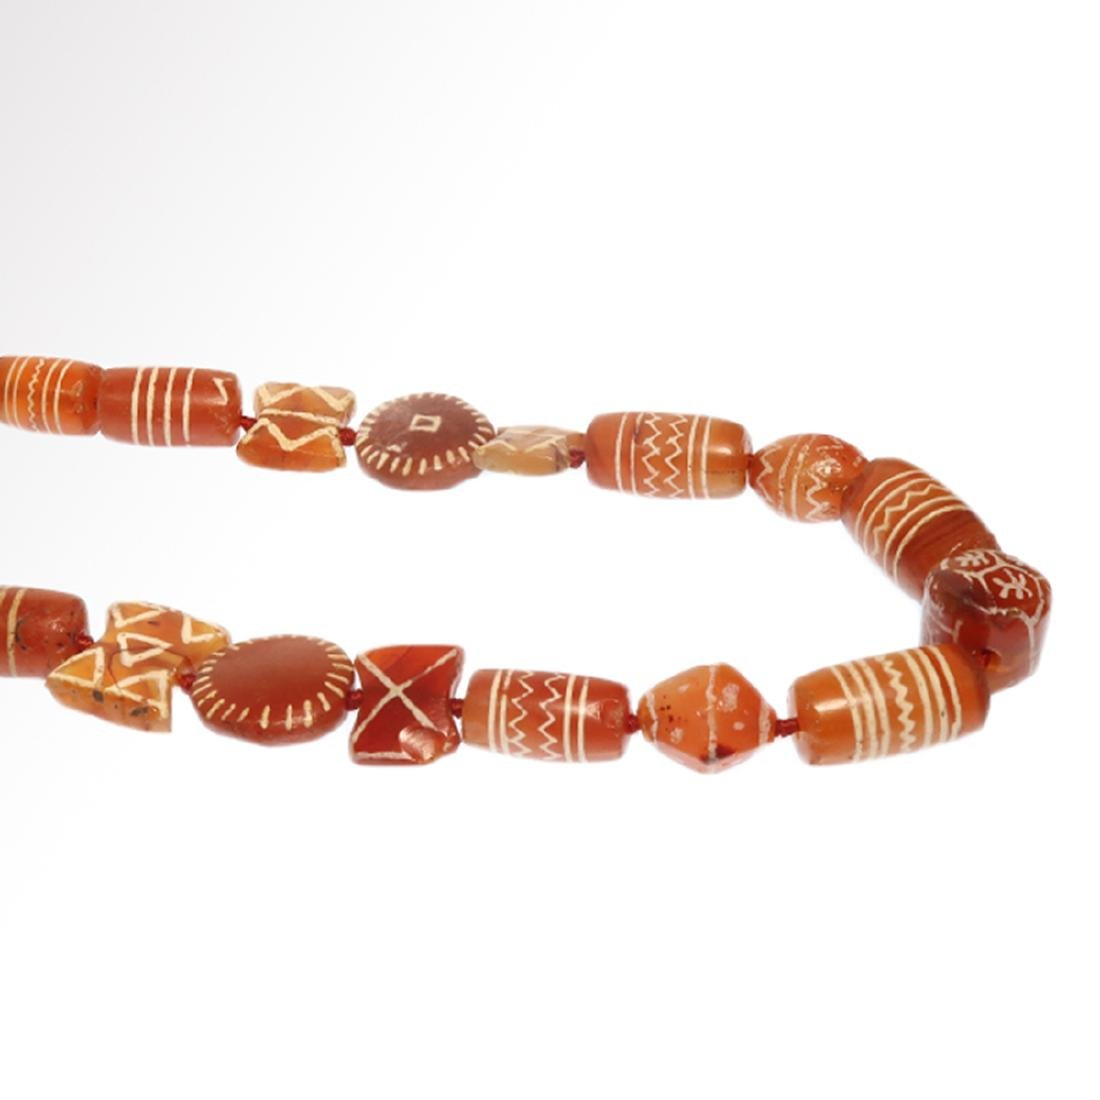 Cornelian Etched Beads Necklace, Near Eastern, 1st - 3